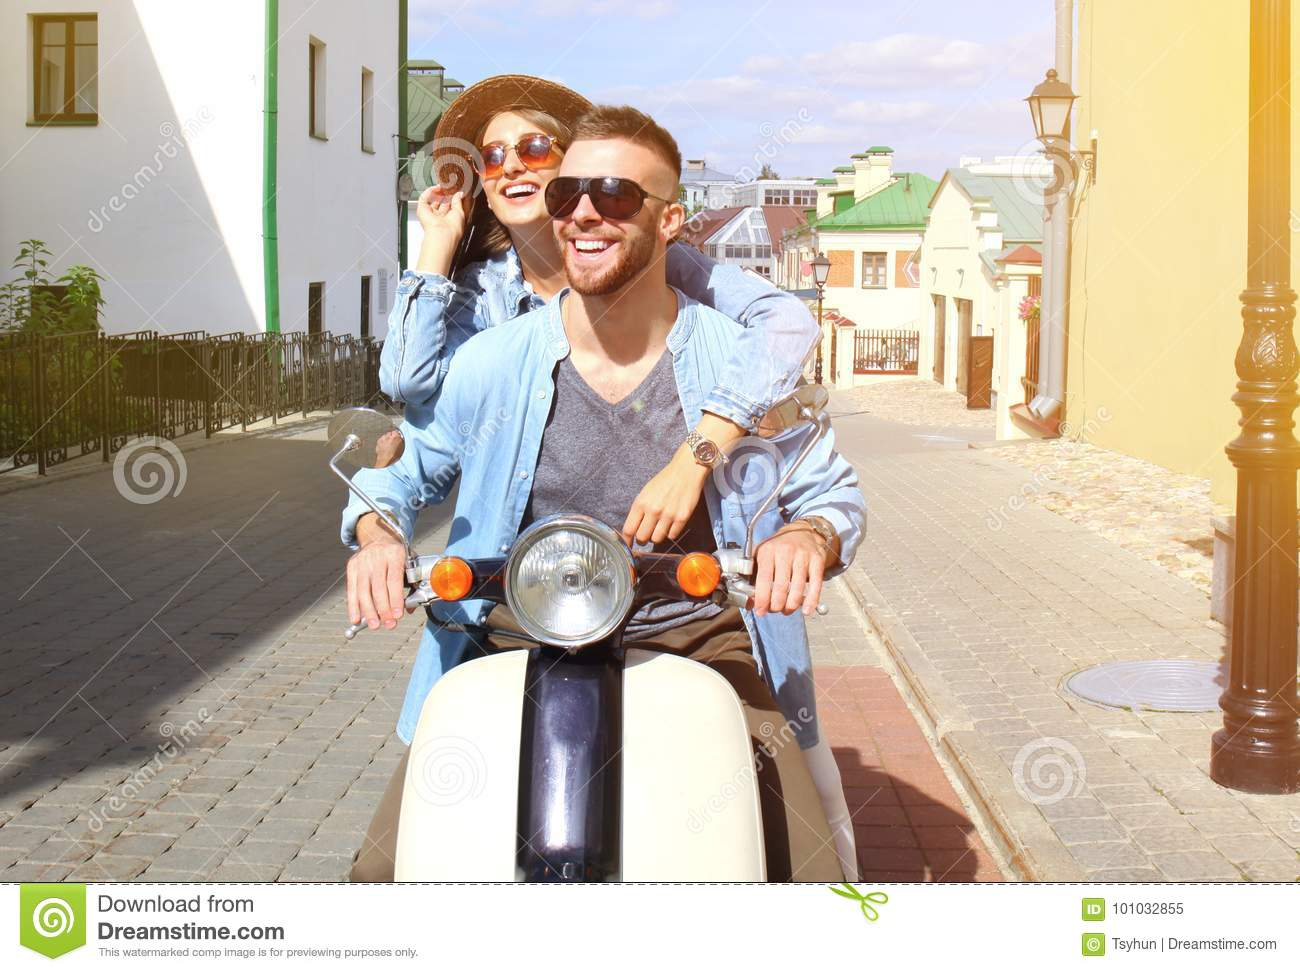 Happy young couple riding scooter in town. Handsome guy and young woman travel. Adventure and vacations concept.